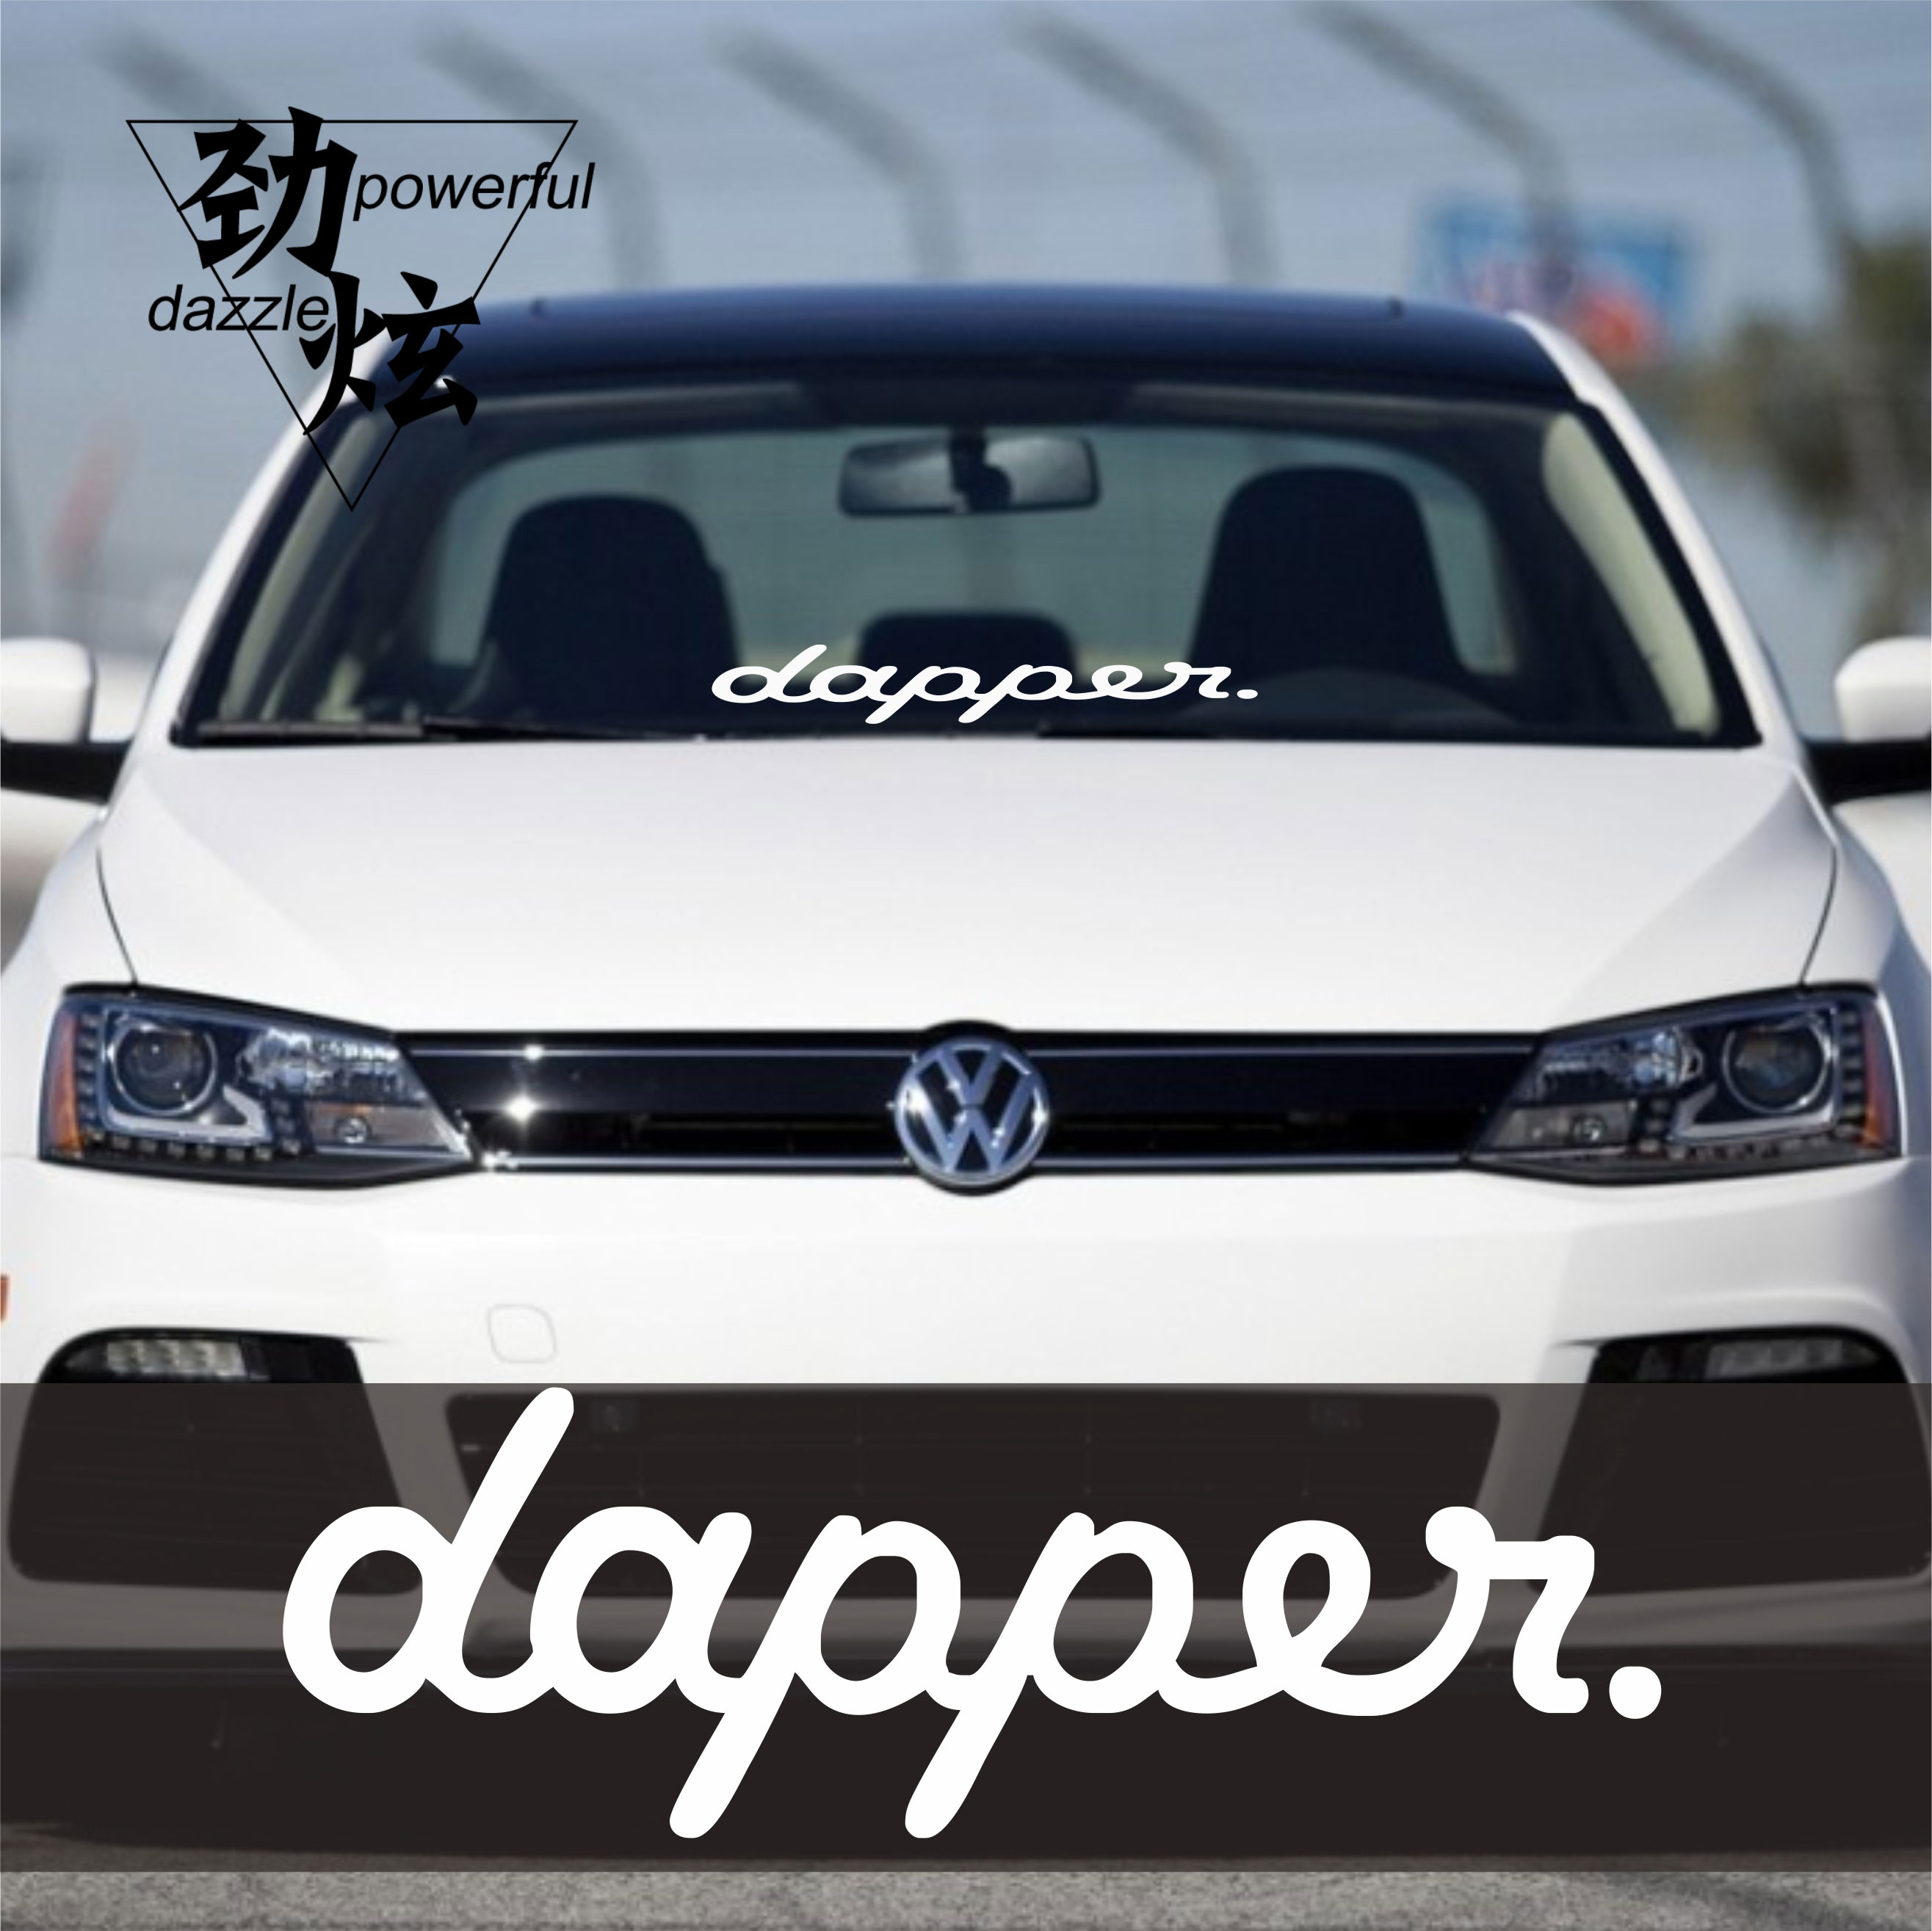 Dapper windshield sticker car front and rear side car stickers personalized stickers trend modified car graffiti